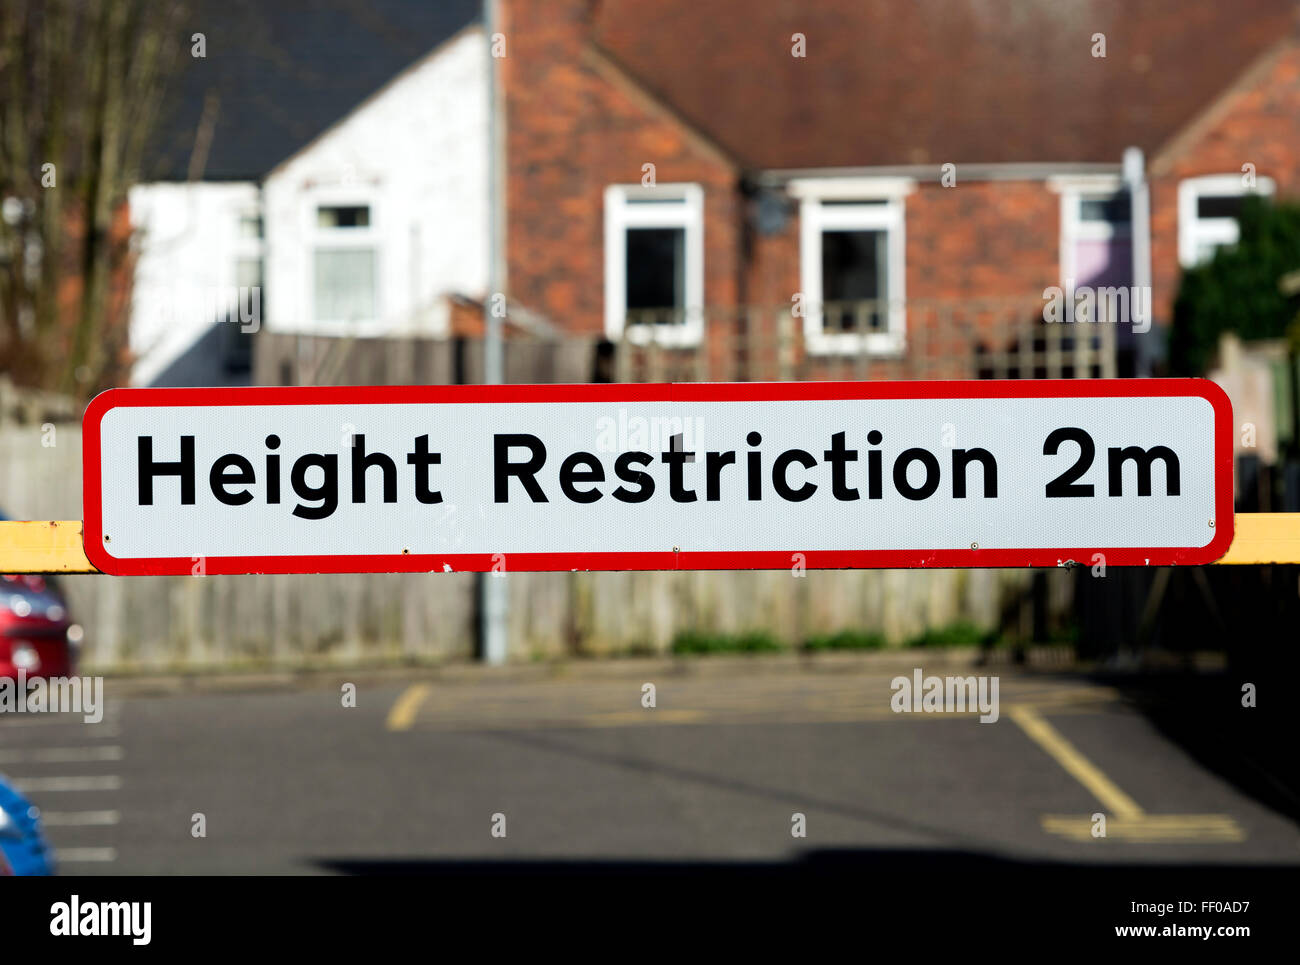 Car Park Height Restriction Sign High Resolution Stock Photography And Images Alamy